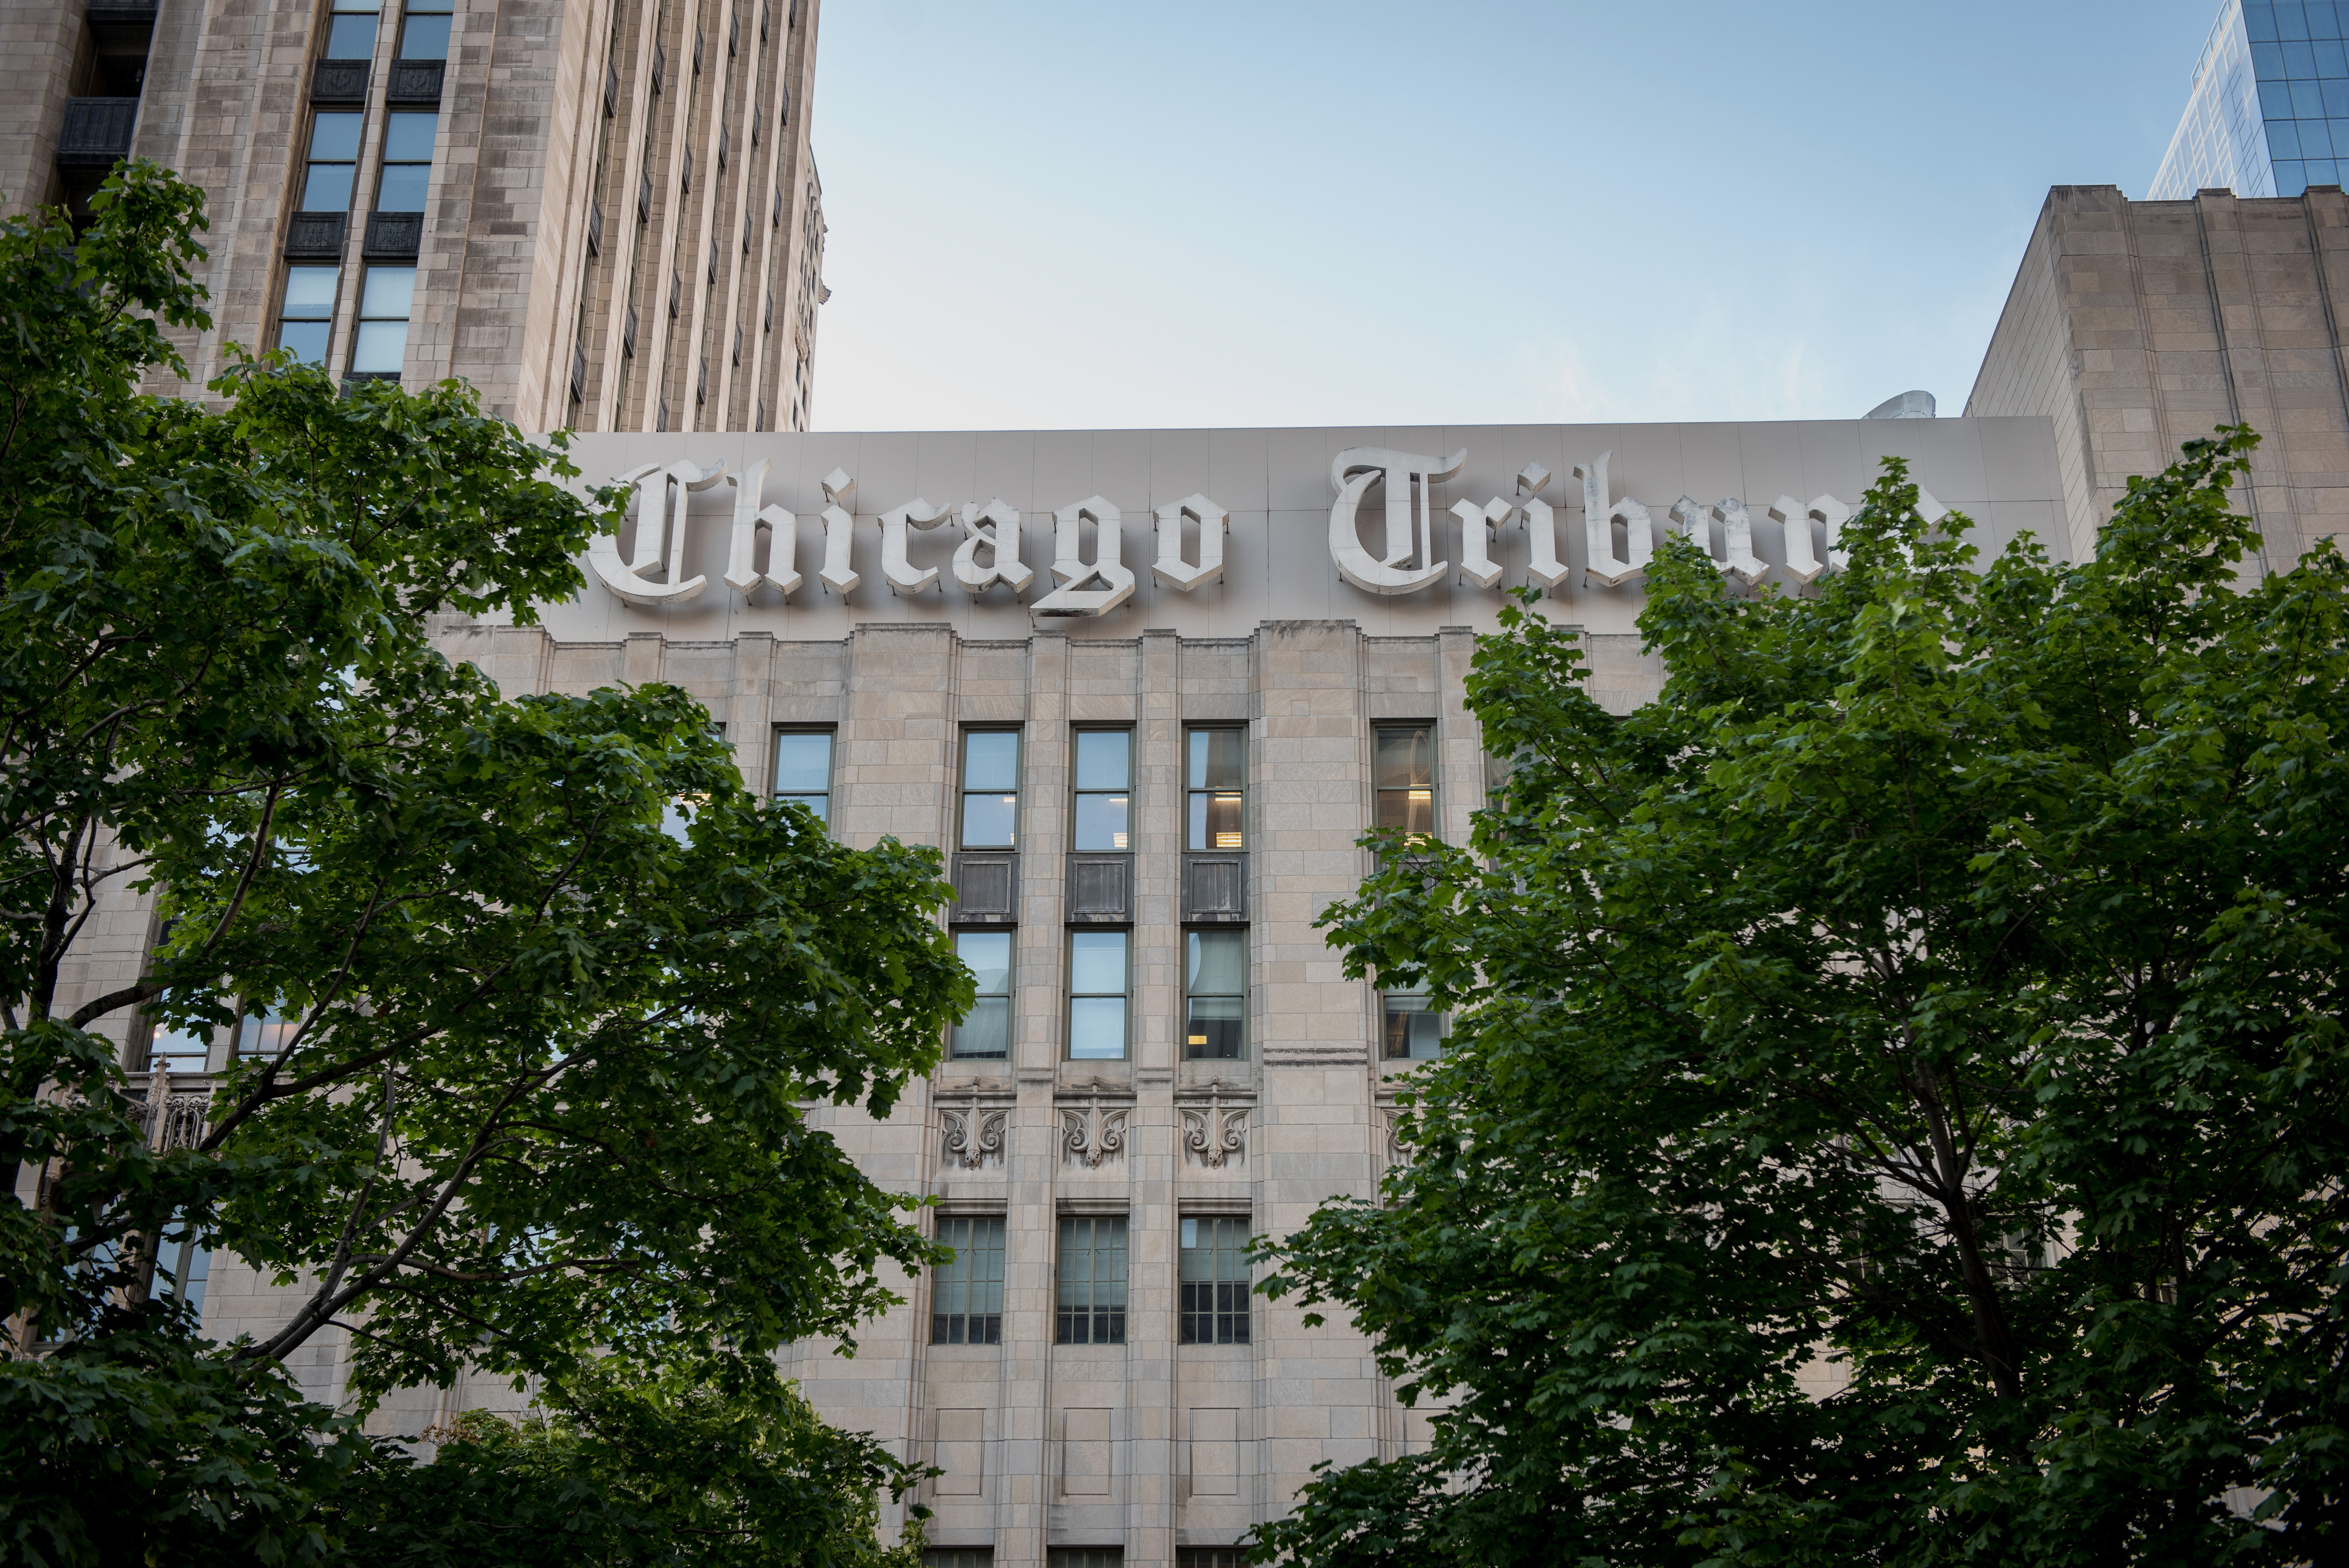 Chicago Tribune signage is displayed on the side of the Tribune Tower in Chicago, Illinois, U.S. August 6, 2015.  Photo: Christopher Dilts/Bloomberg